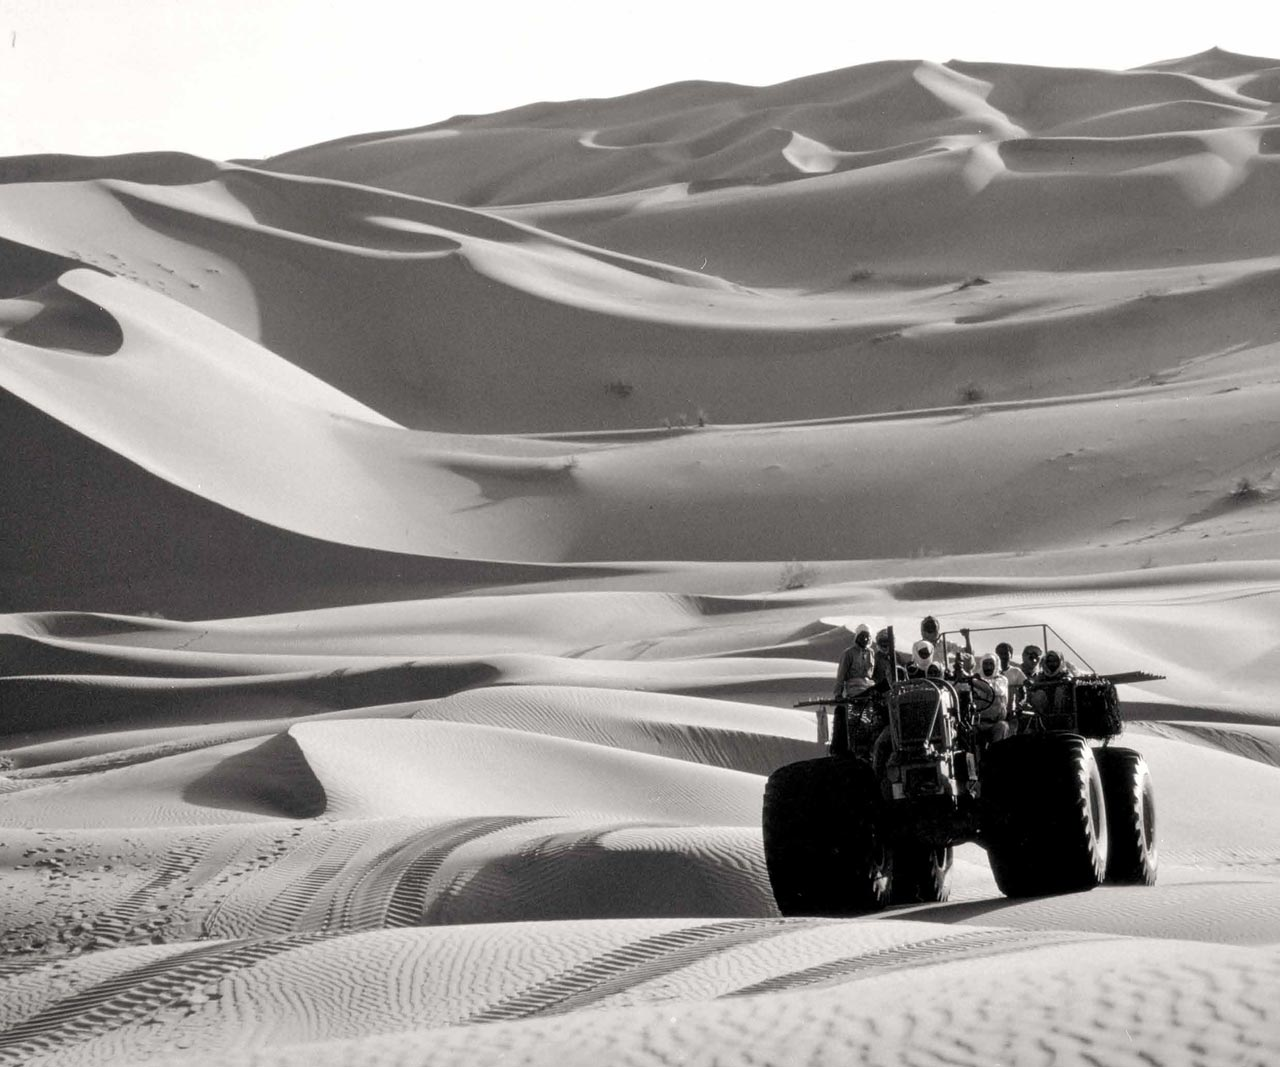 An Exploration Party in the Rub' al-Khali Traverses the Dunes Aboard a Sand Buggy